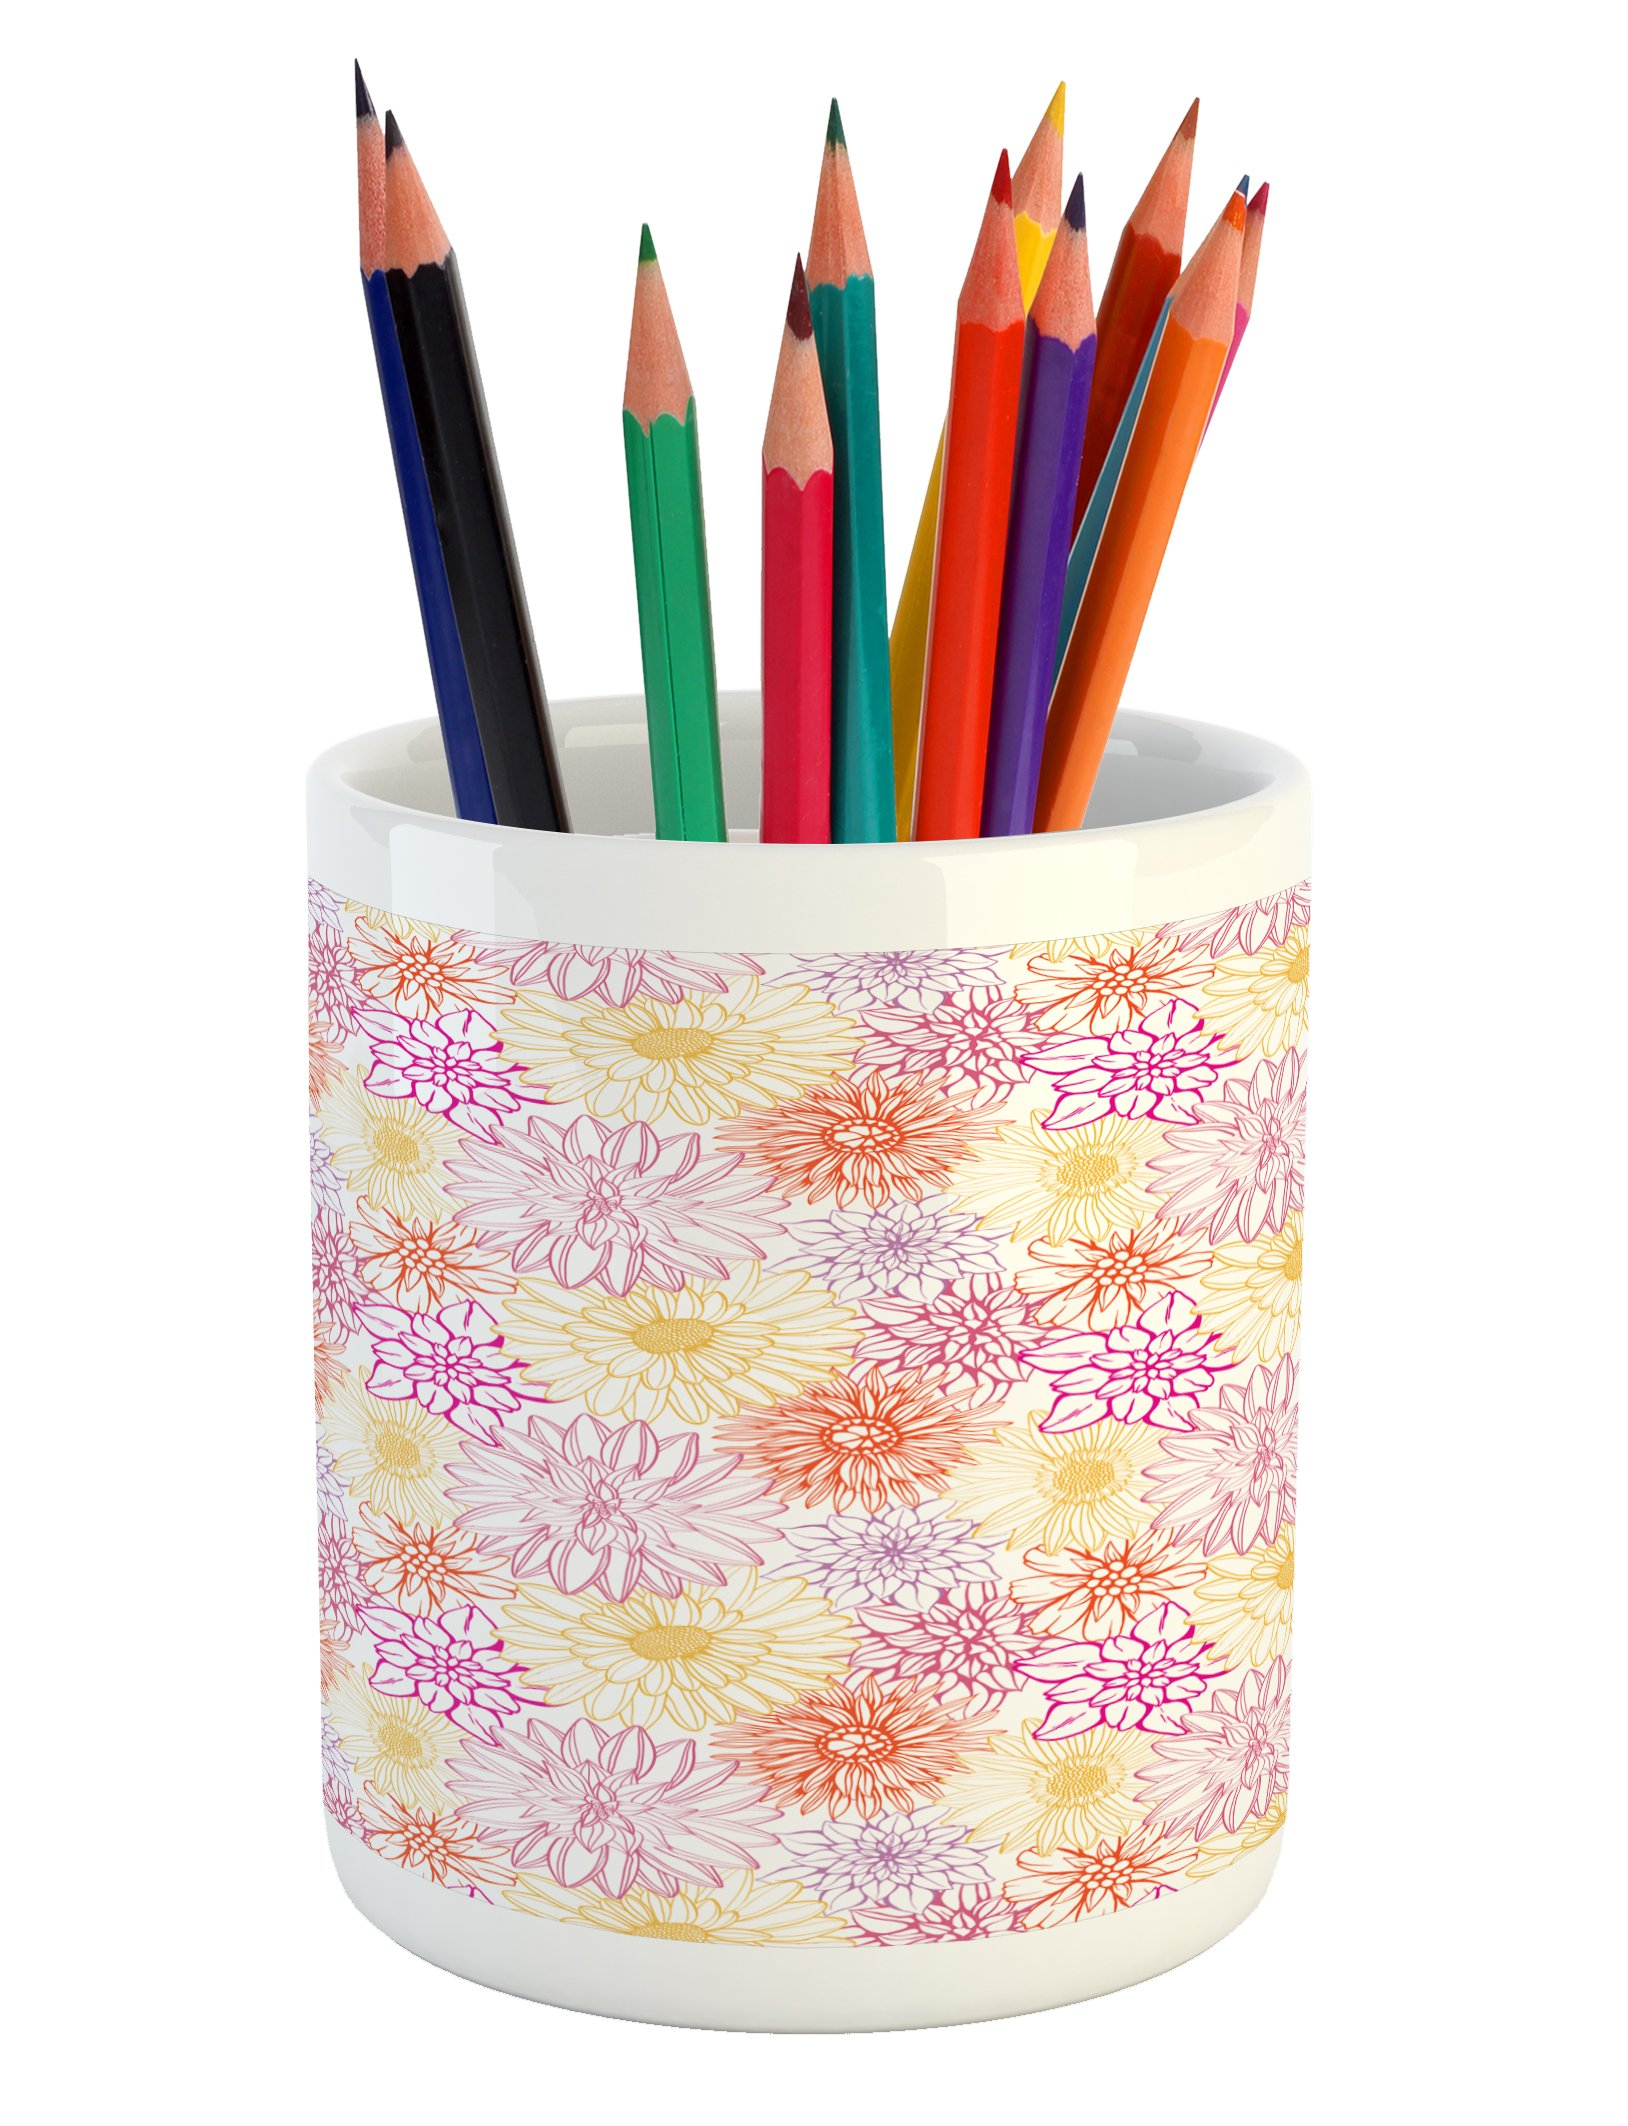 Ambesonne Floral Pencil Pen Holder, Blossom Spa Gardening Theme Flower Petals Essence Bouquet Art, Printed Ceramic Pencil Pen Holder for Desk Office Accessory, Pale Yellow Dark Coral Fuchsia